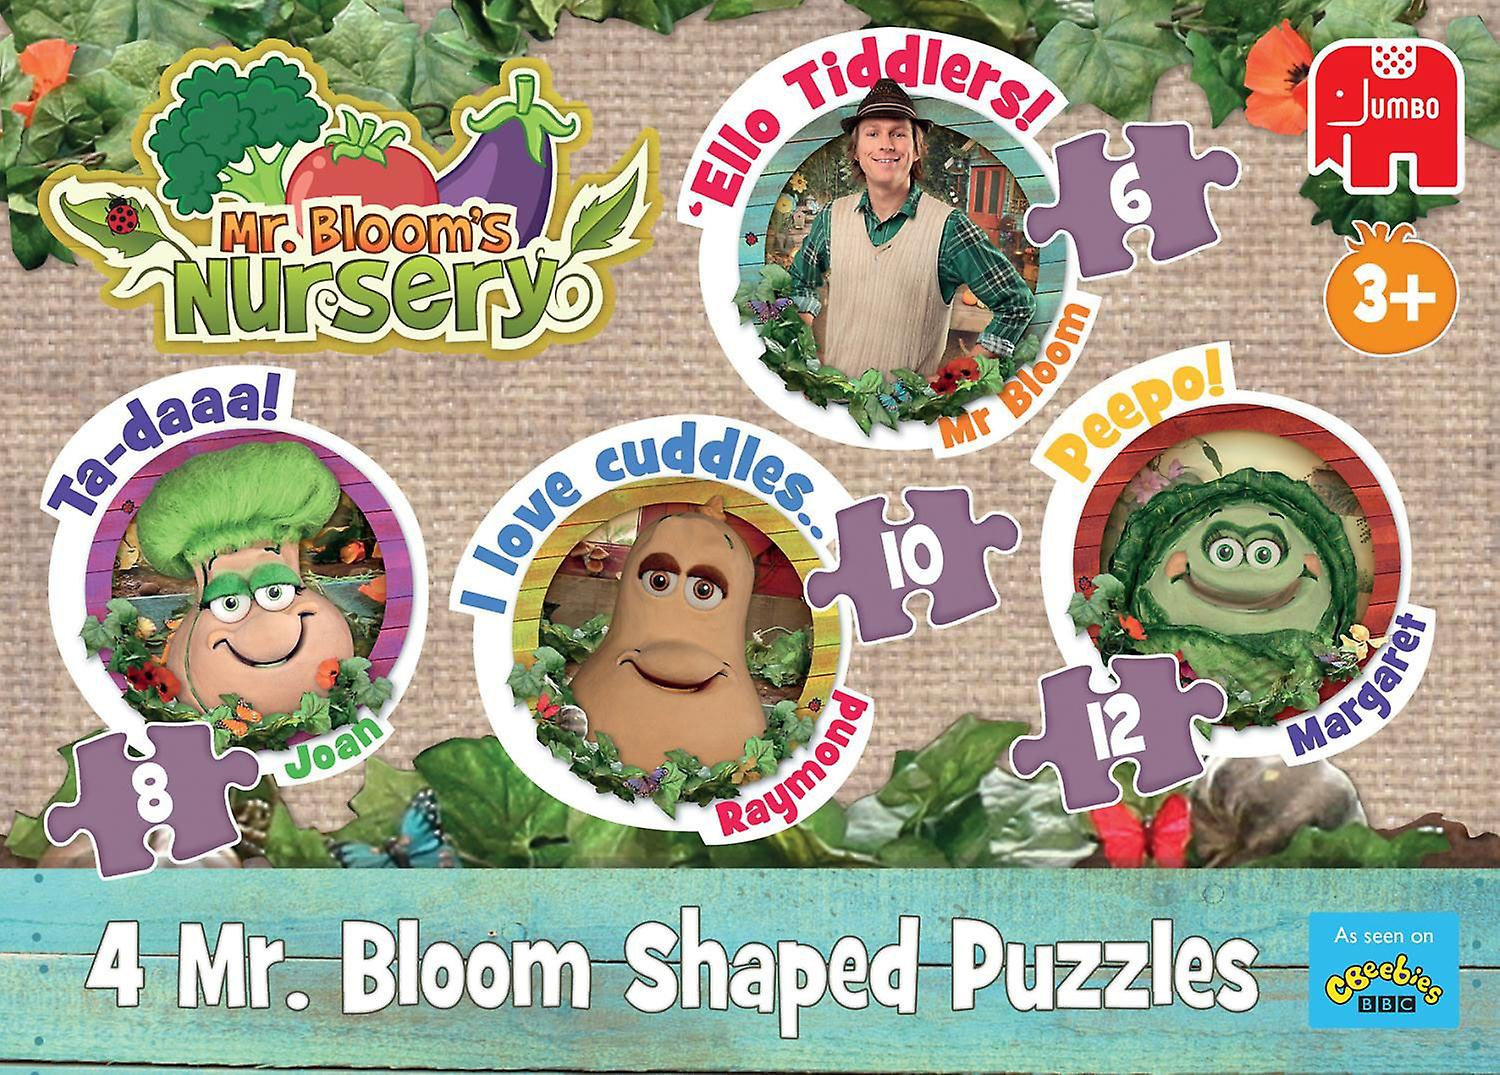 Jumbo Mr Bloom's Nursery 4-In-1 Shaped Puzzles (6 - 12 Pieces)